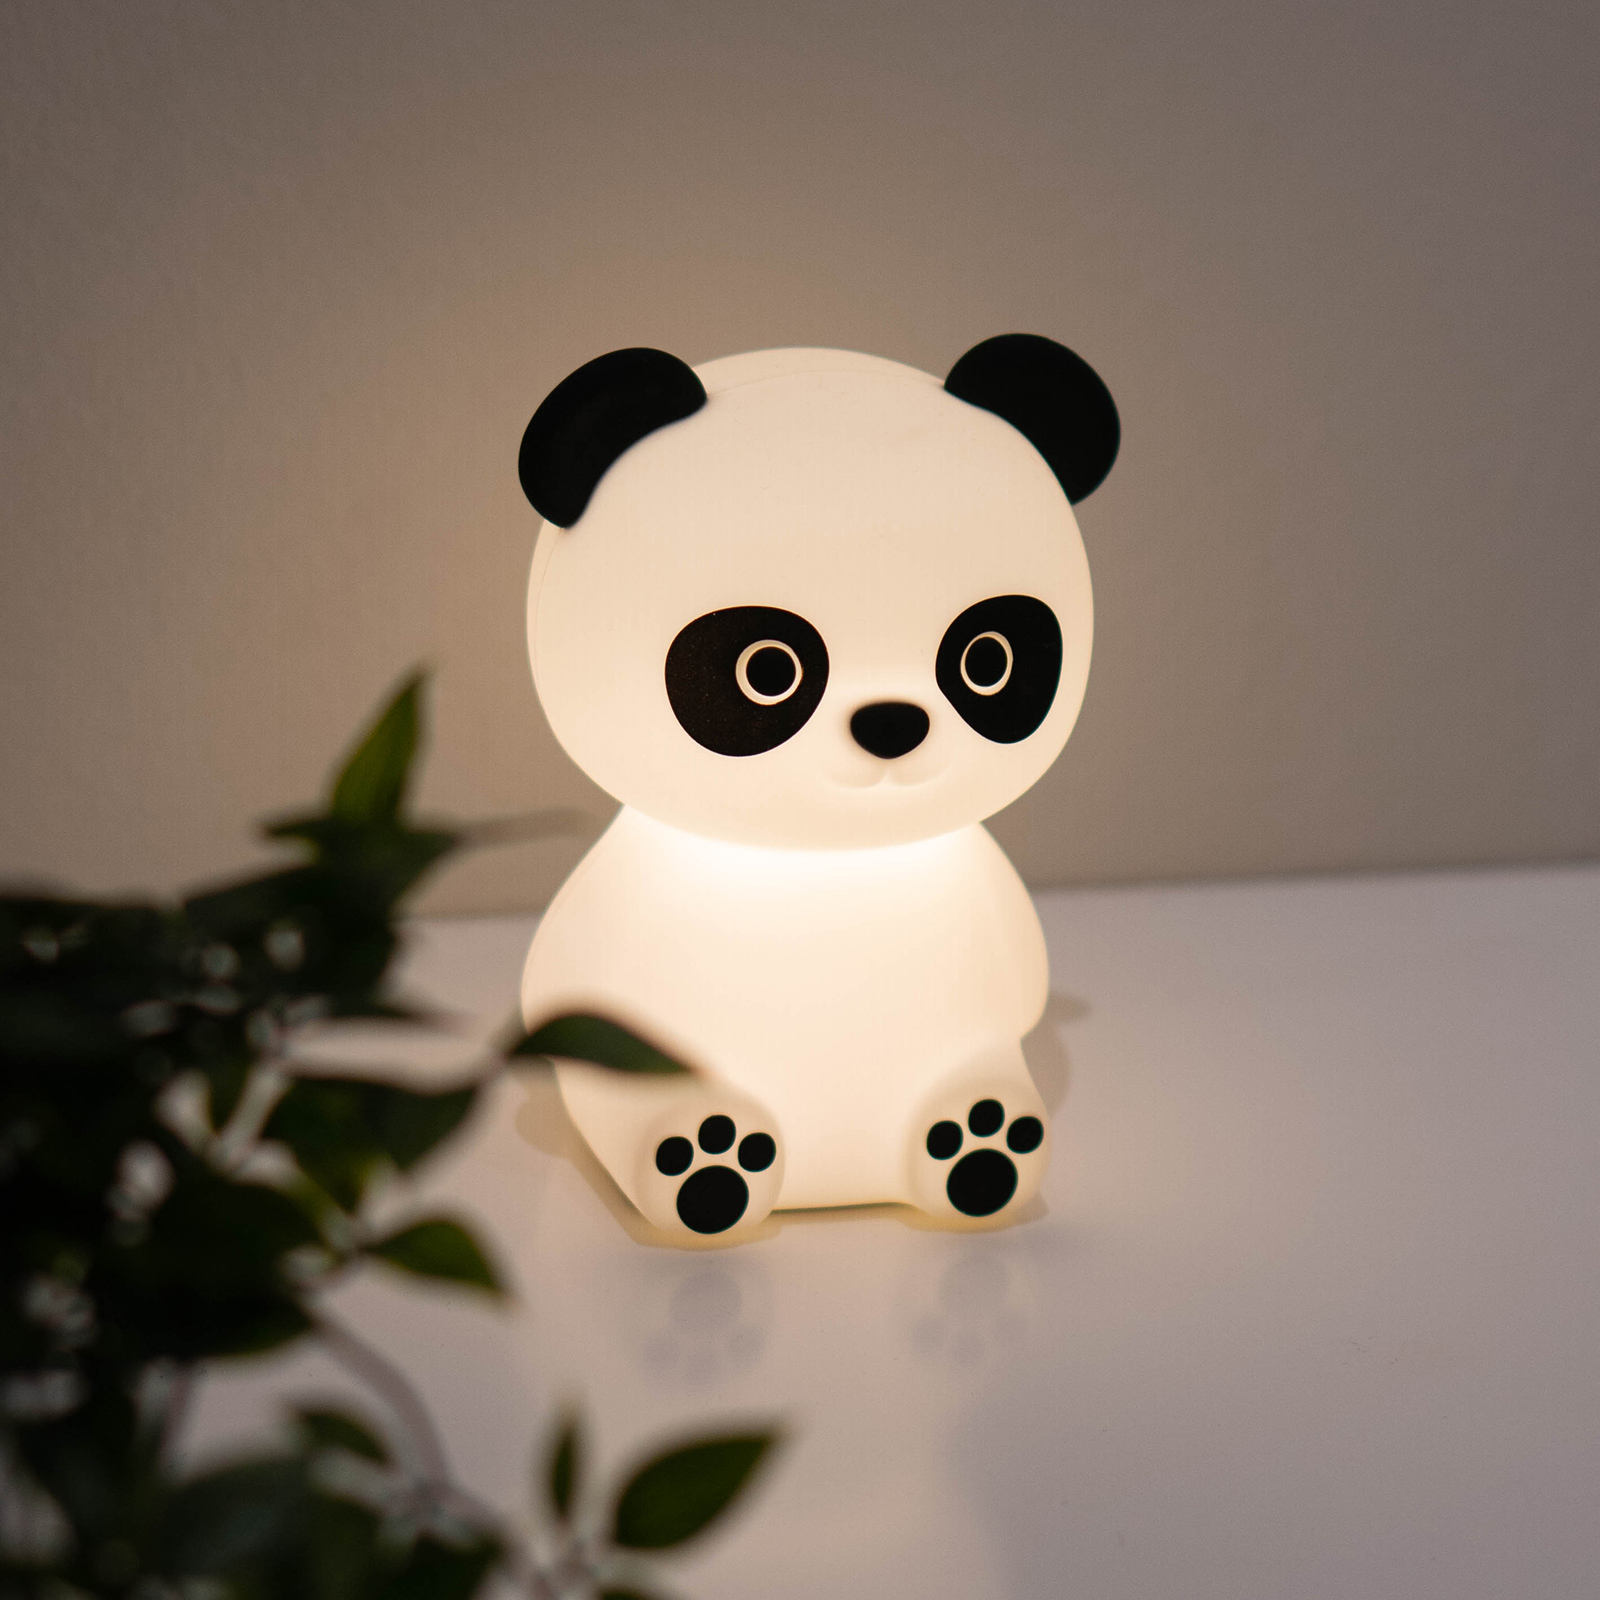 Paddy Pandy LED night light with battery and USB_5400365_1